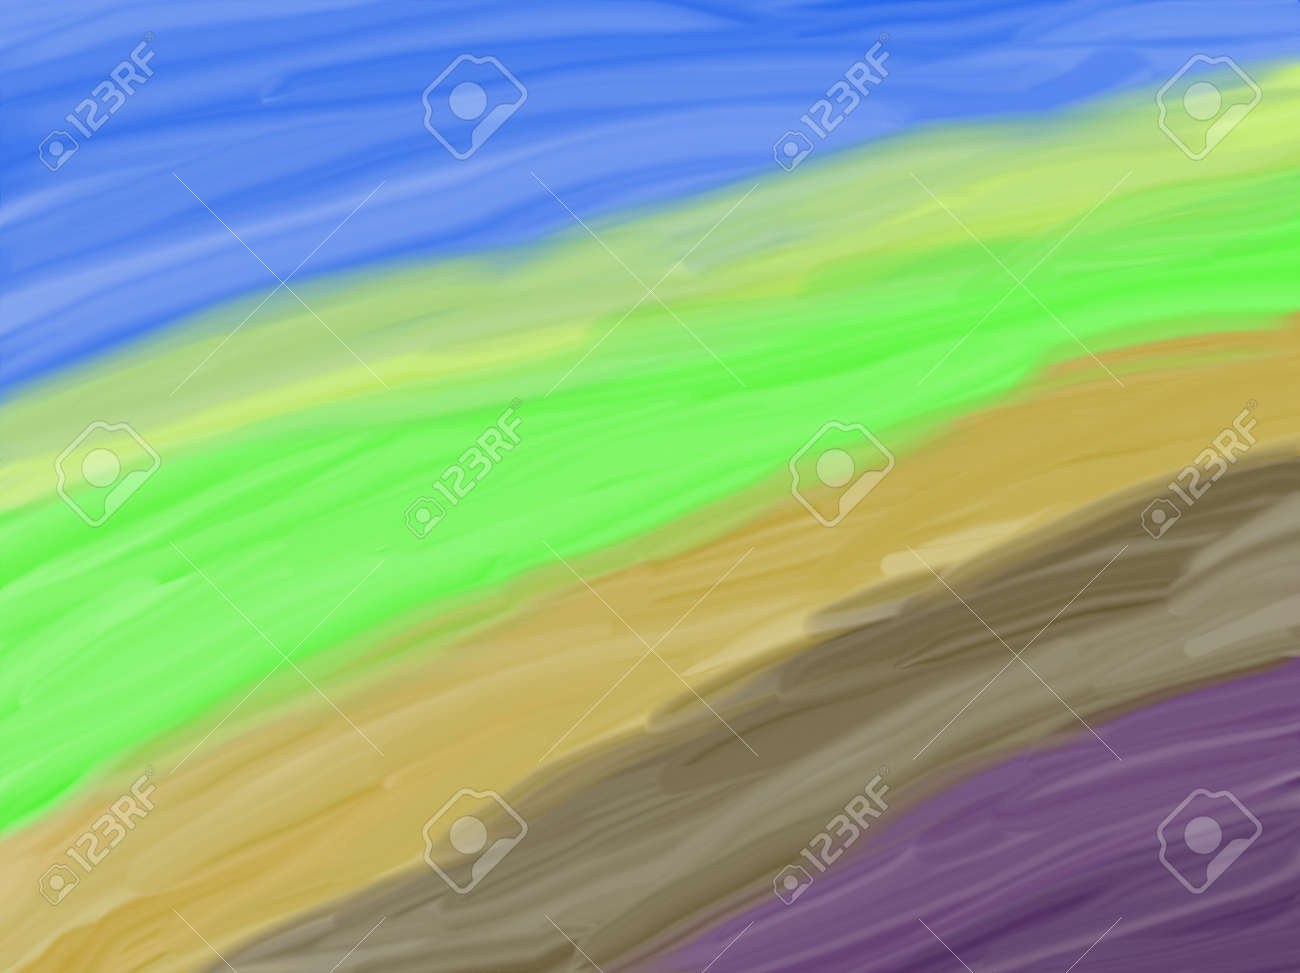 Abstract generated watercolor painted pattern art background Stock Photo - 12957614